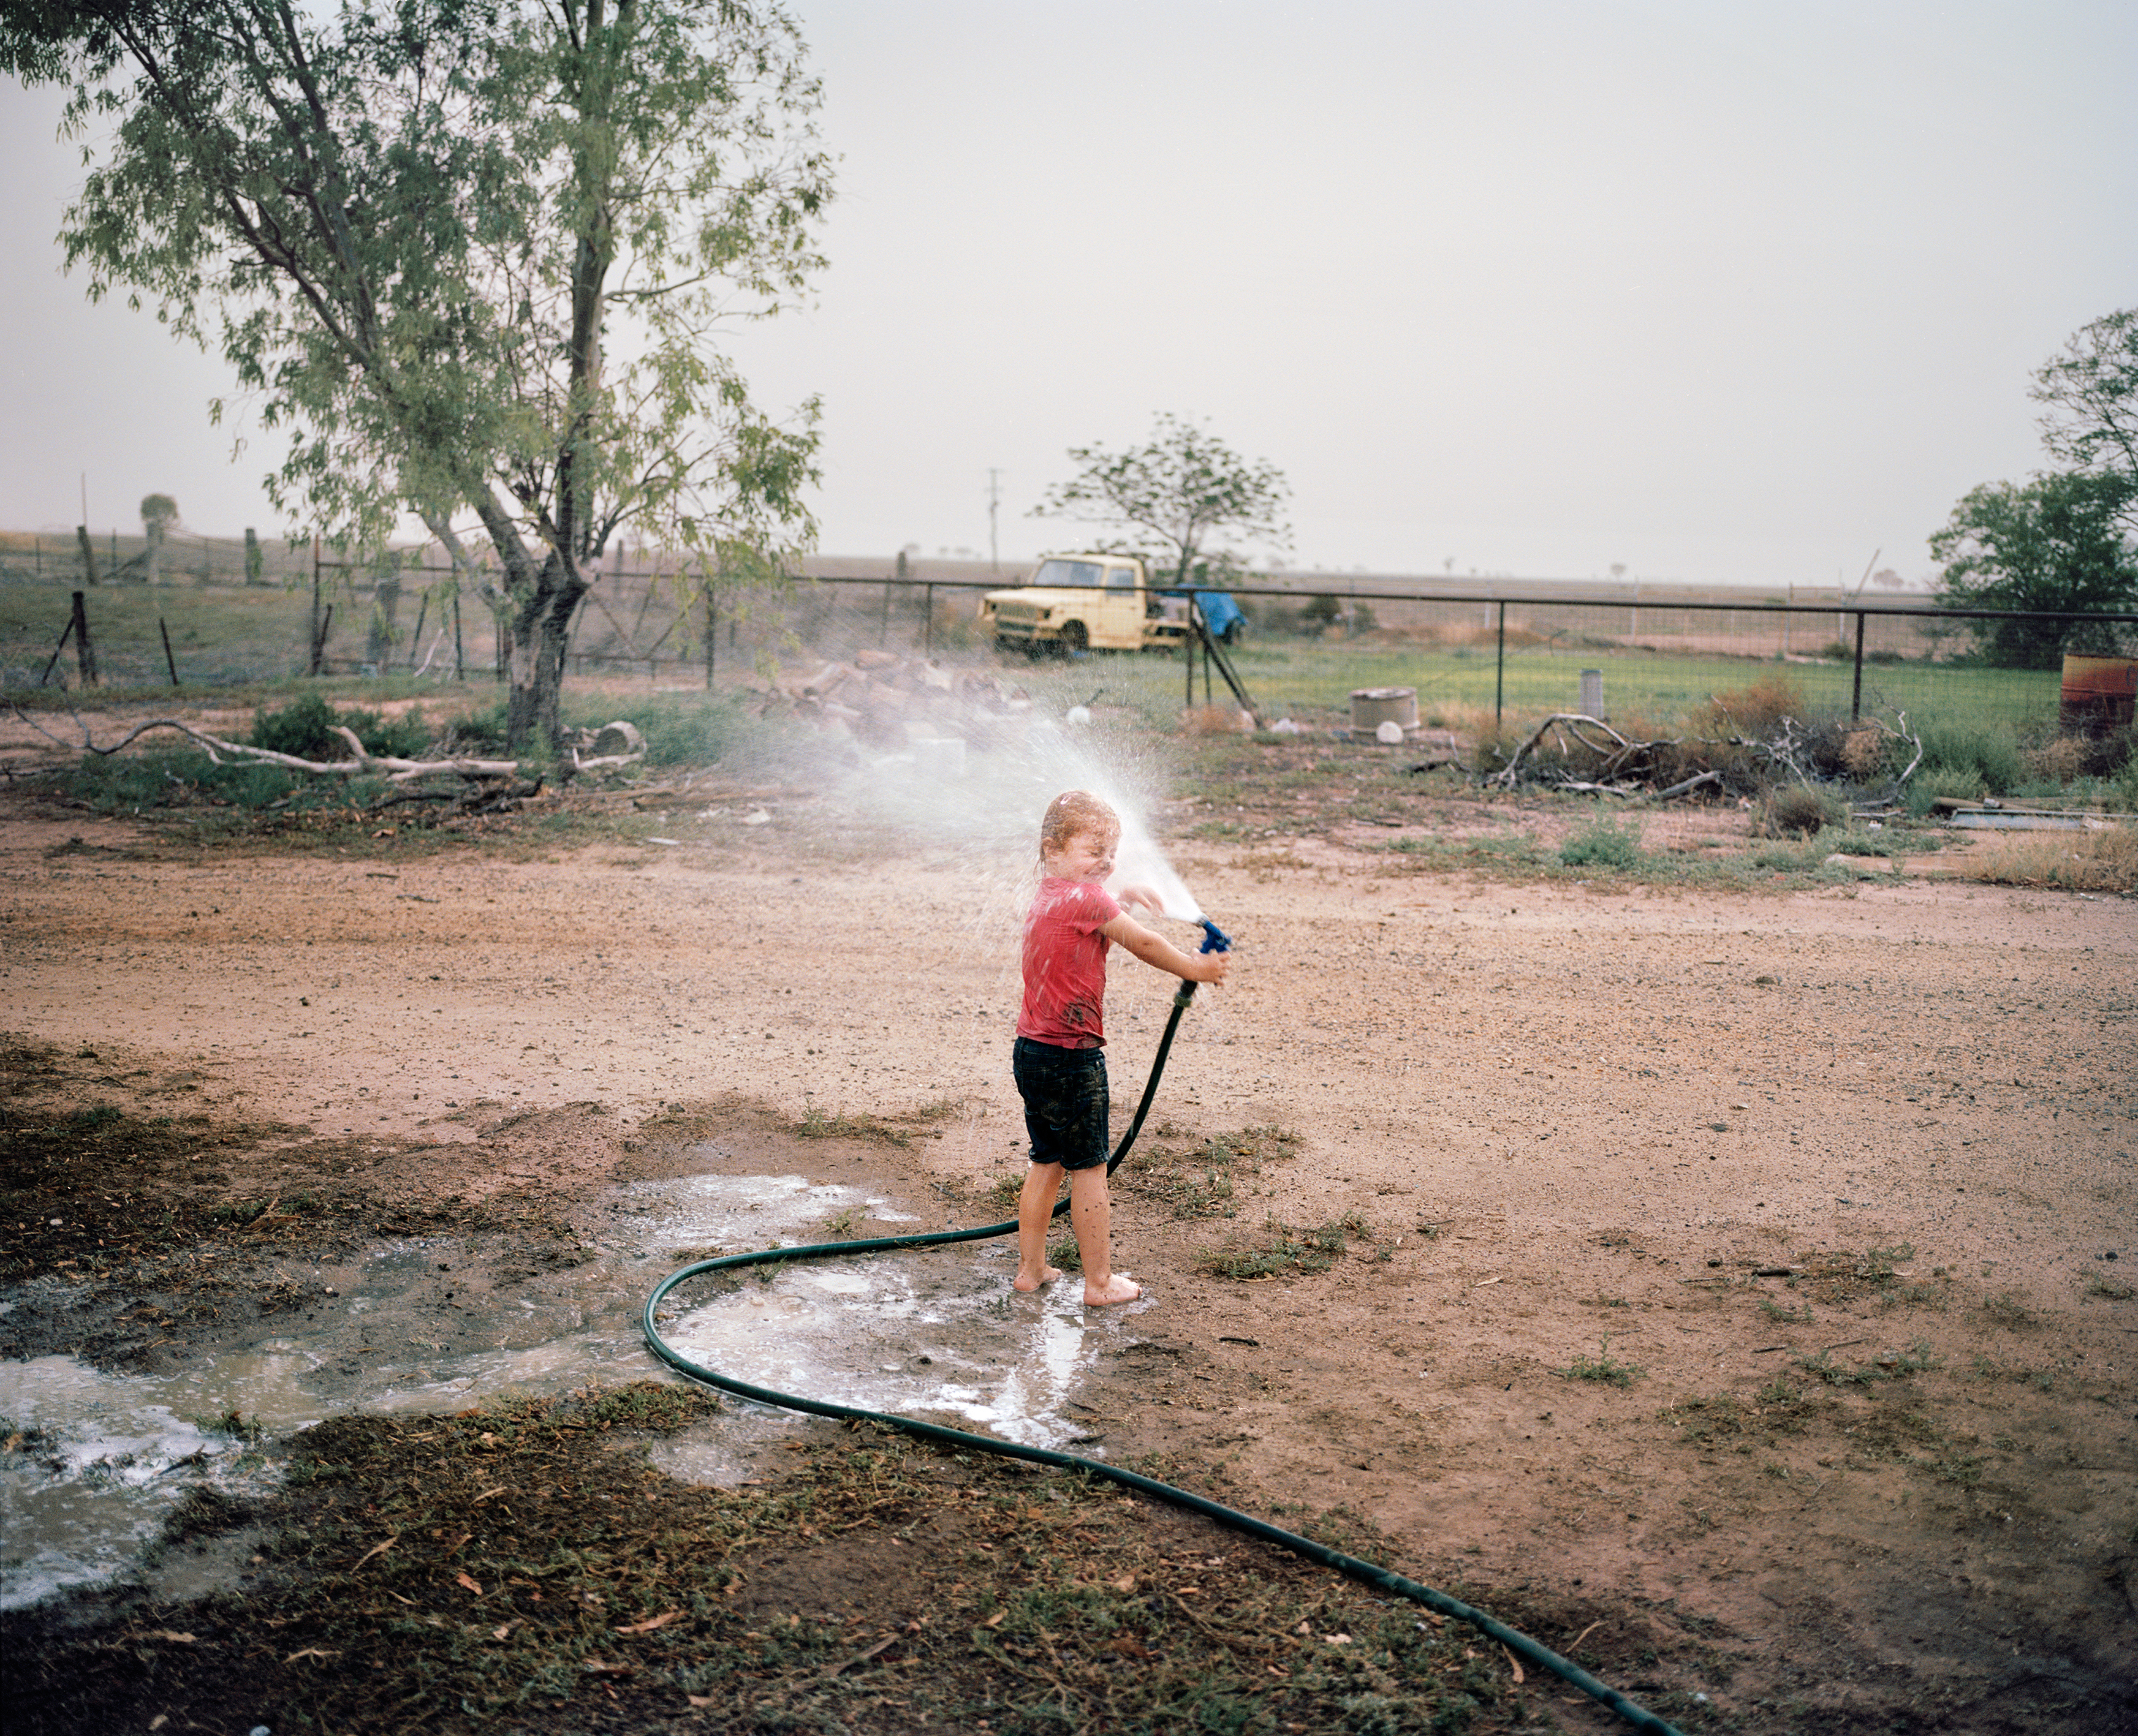 The daughter of farmer Ben Hawk plays with a hose at a Come by Chance store in New South Wales in December. Hawk did not plant crops last year because of the drought. While believing it's up to farmers to run a diverse business that is resilient enough to drought, Hawk says  it will be time to make some tough decisions if it doesn't rain in 2019.